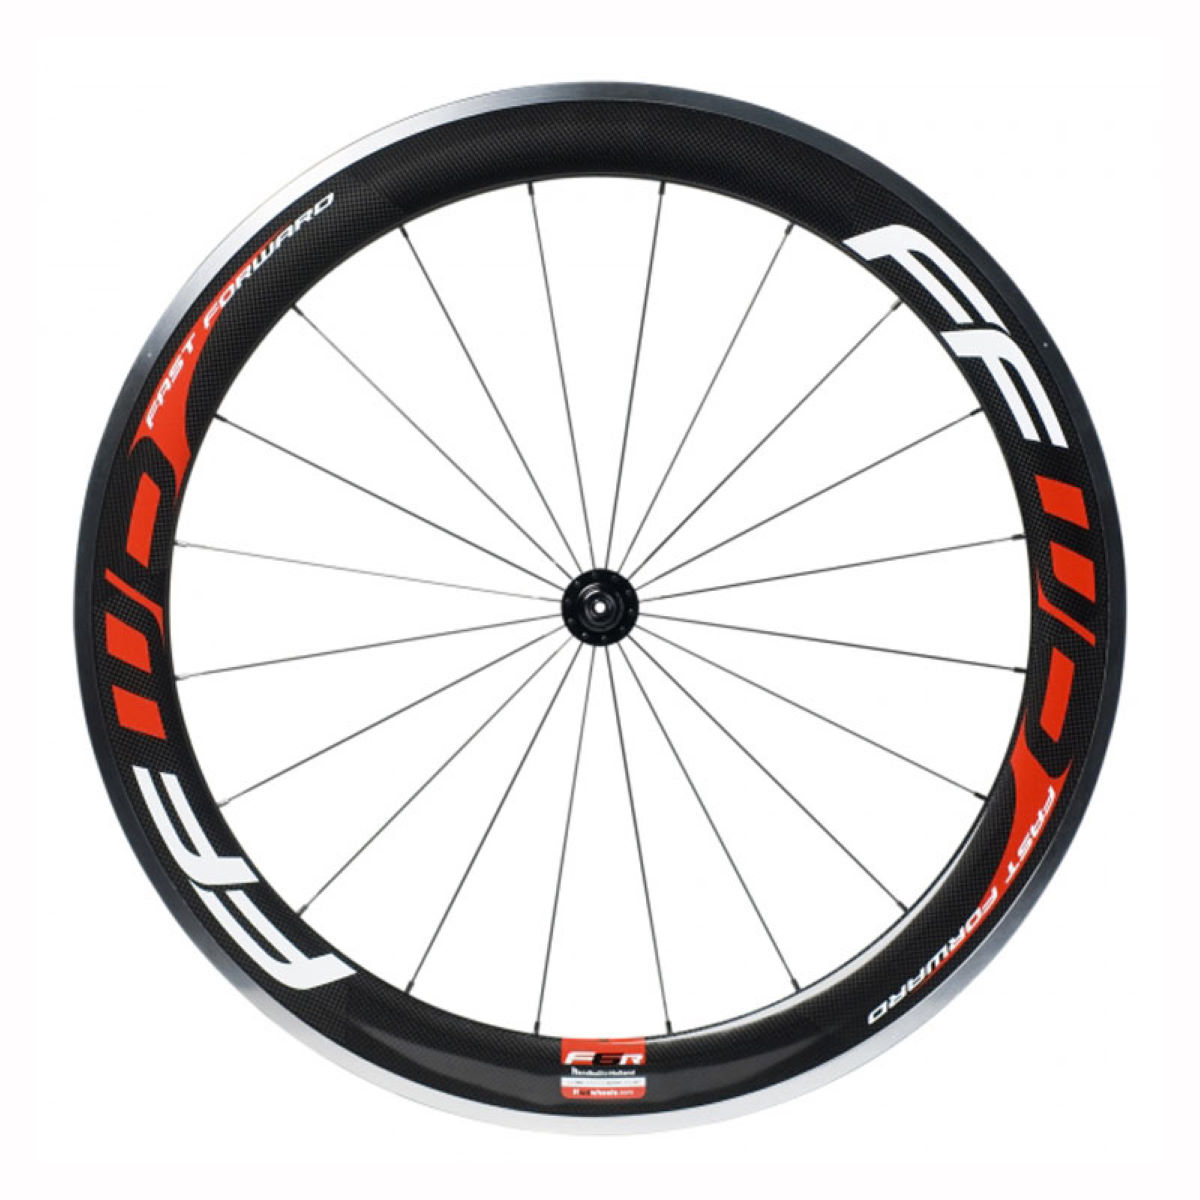 Roue avant Fast Forward F6R (carbone/alliage) - 700c - Clincher Black/Red/White Roues performance